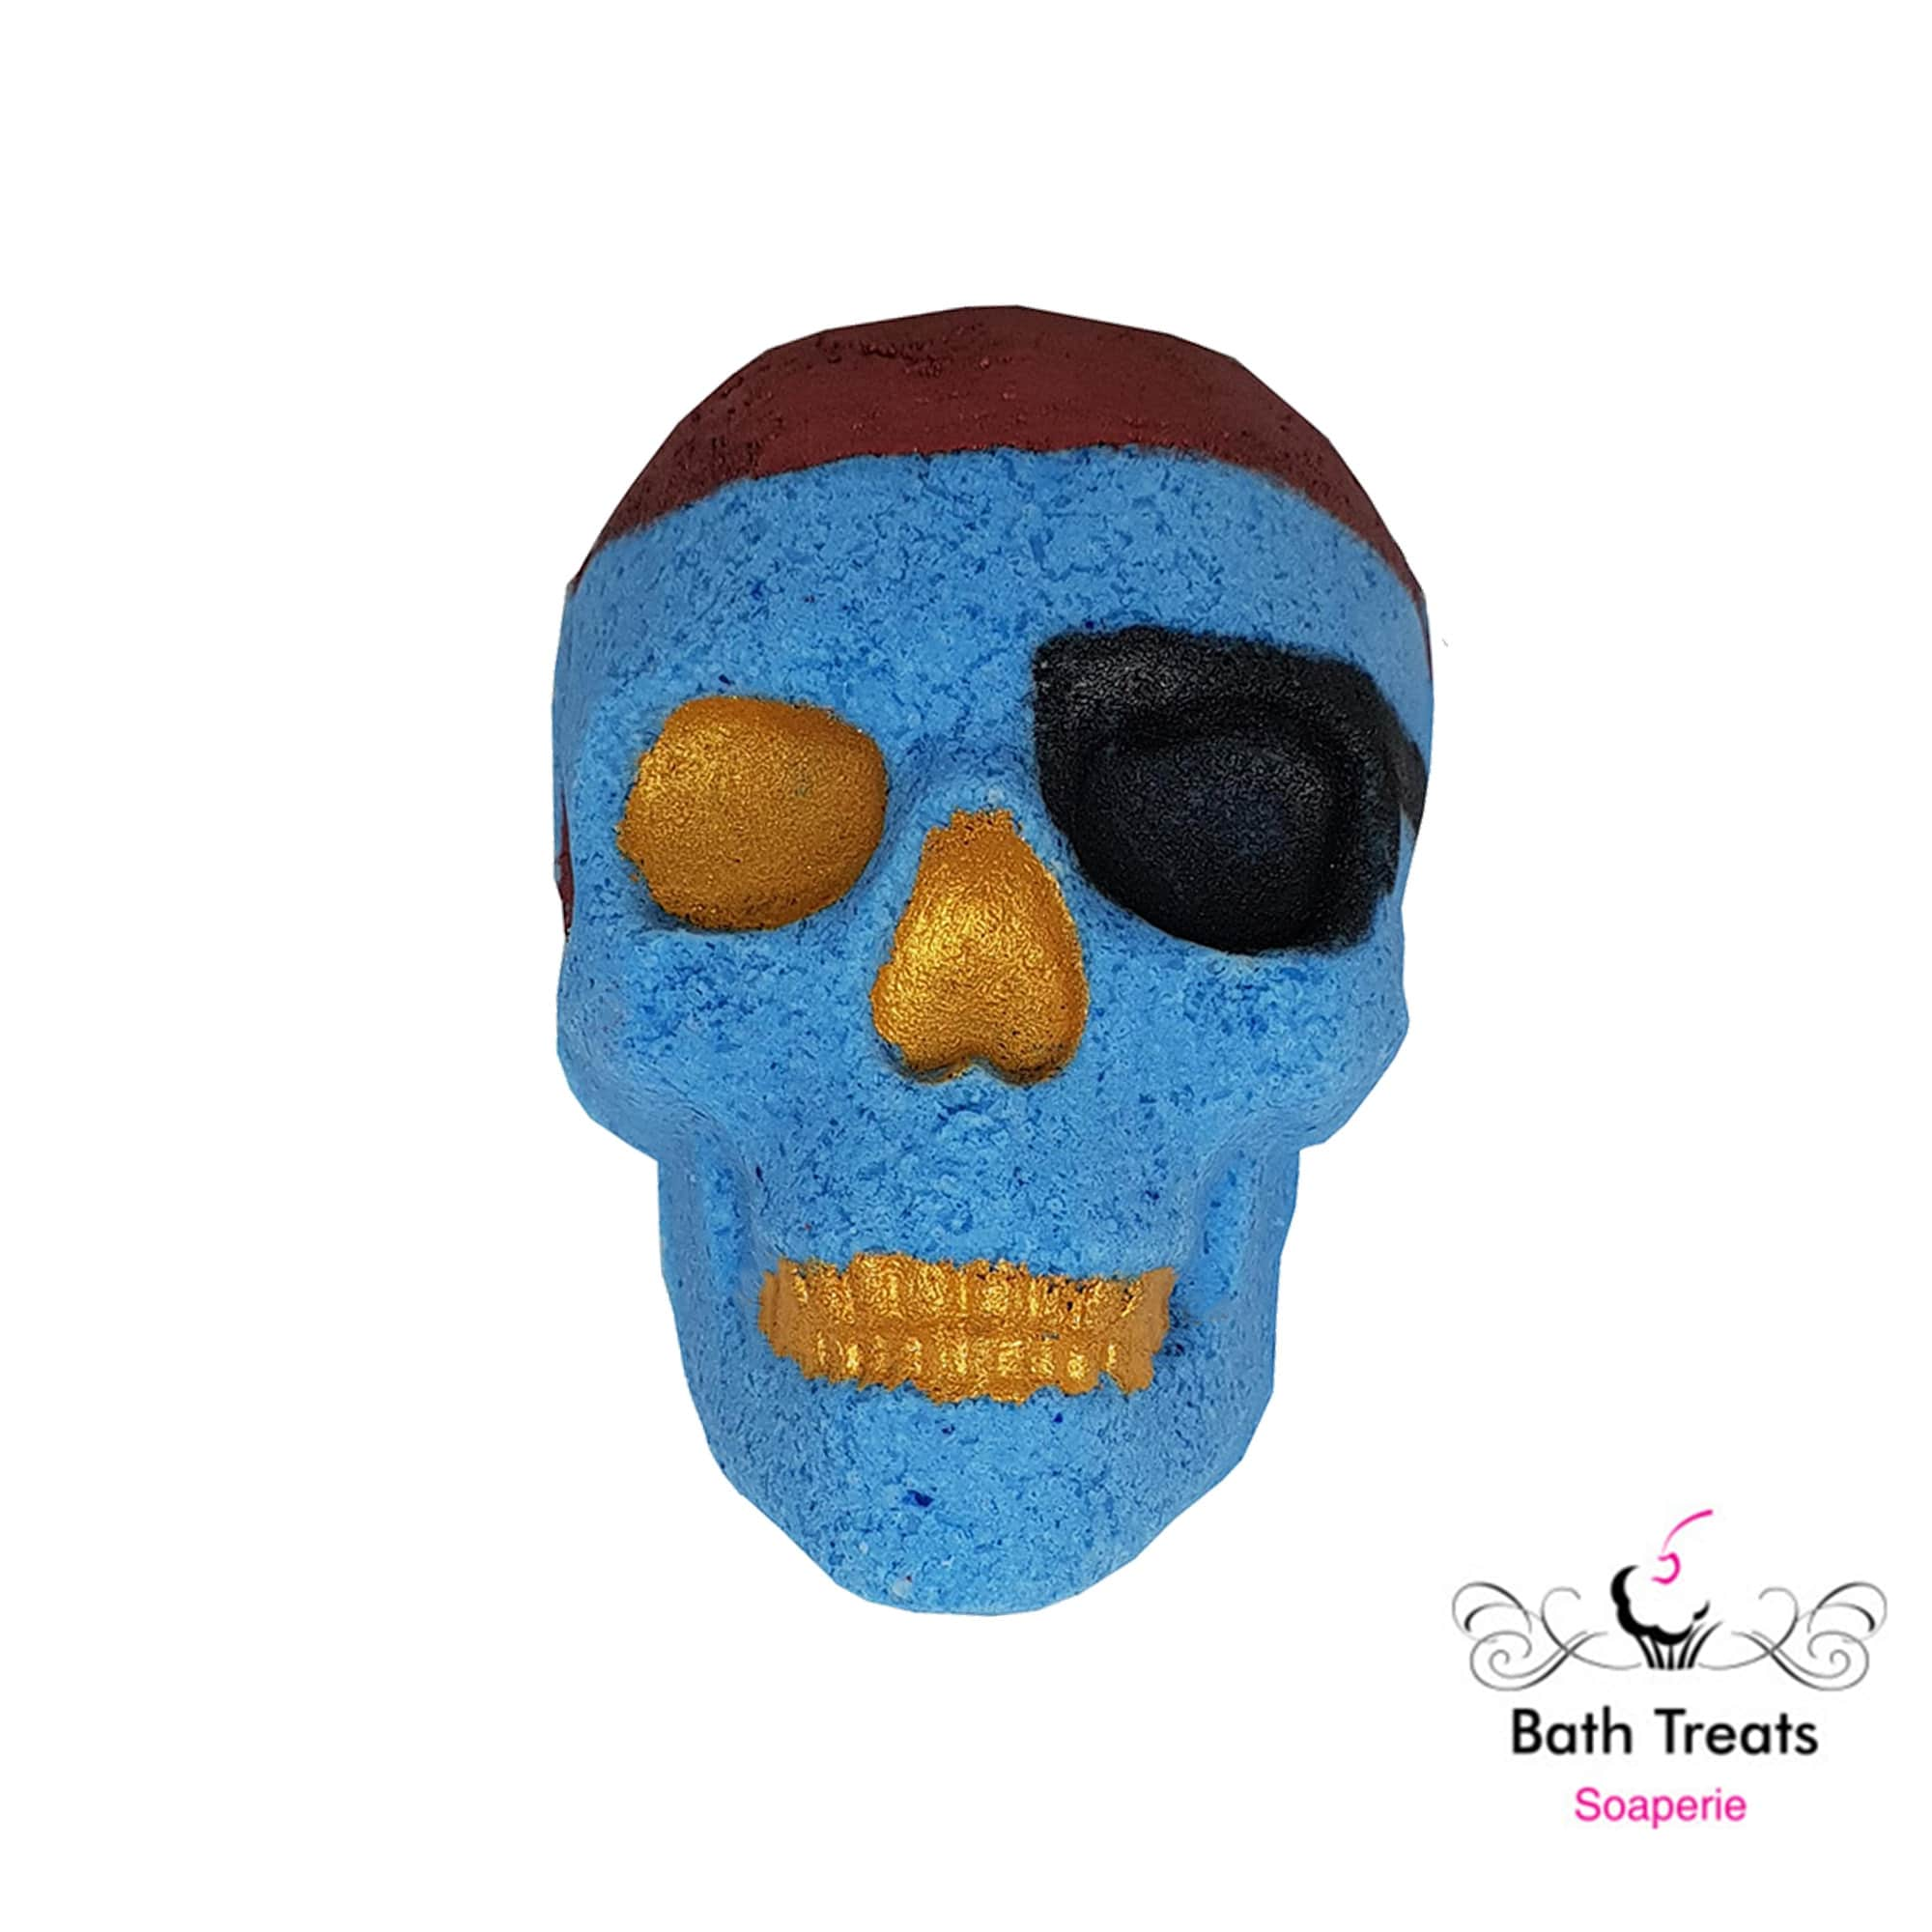 Pirate Skull Bath Bomb